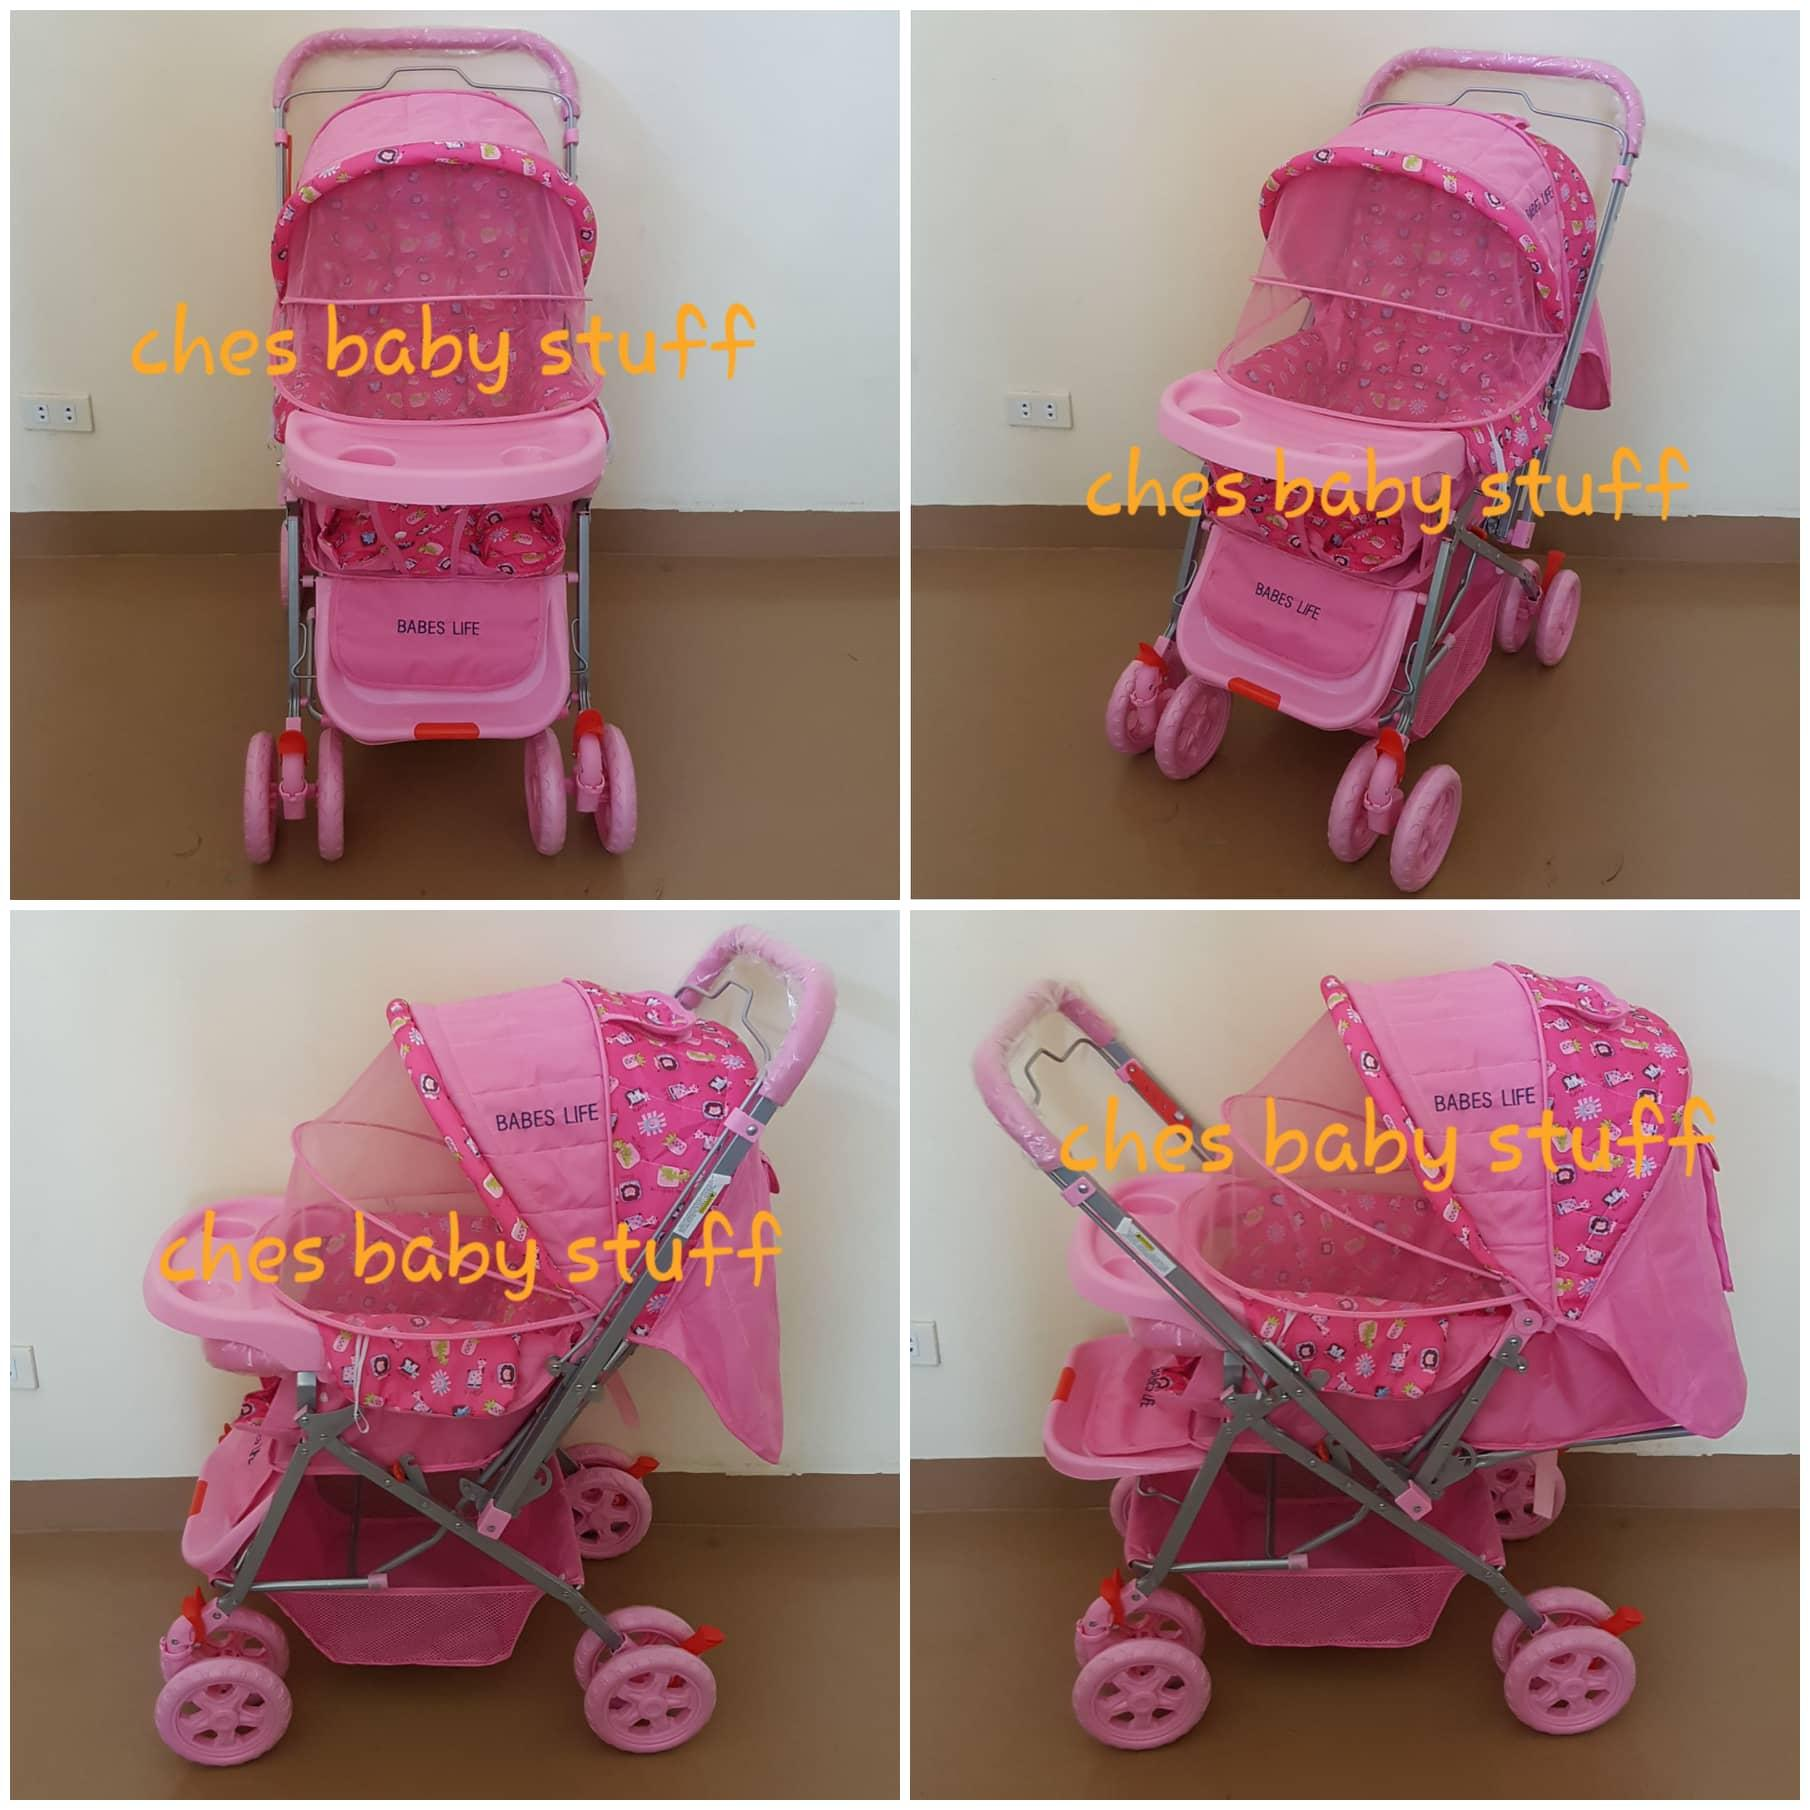 Babes Life Reclining Stroller Reversible Handle With Mosquito Net (pink) By Tinny Bunny.